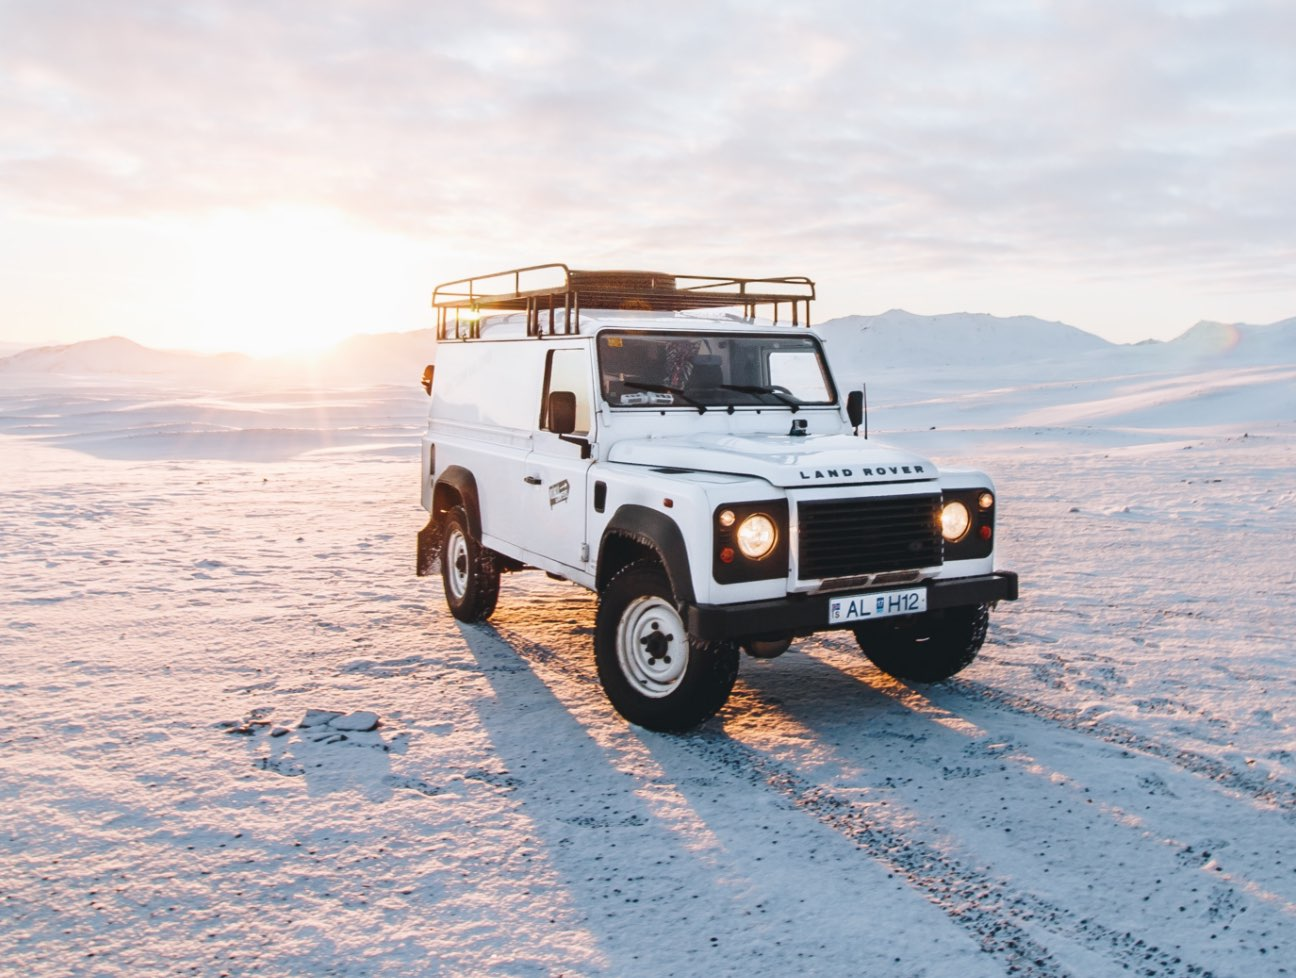 Land Rover parked on dunes at sunset